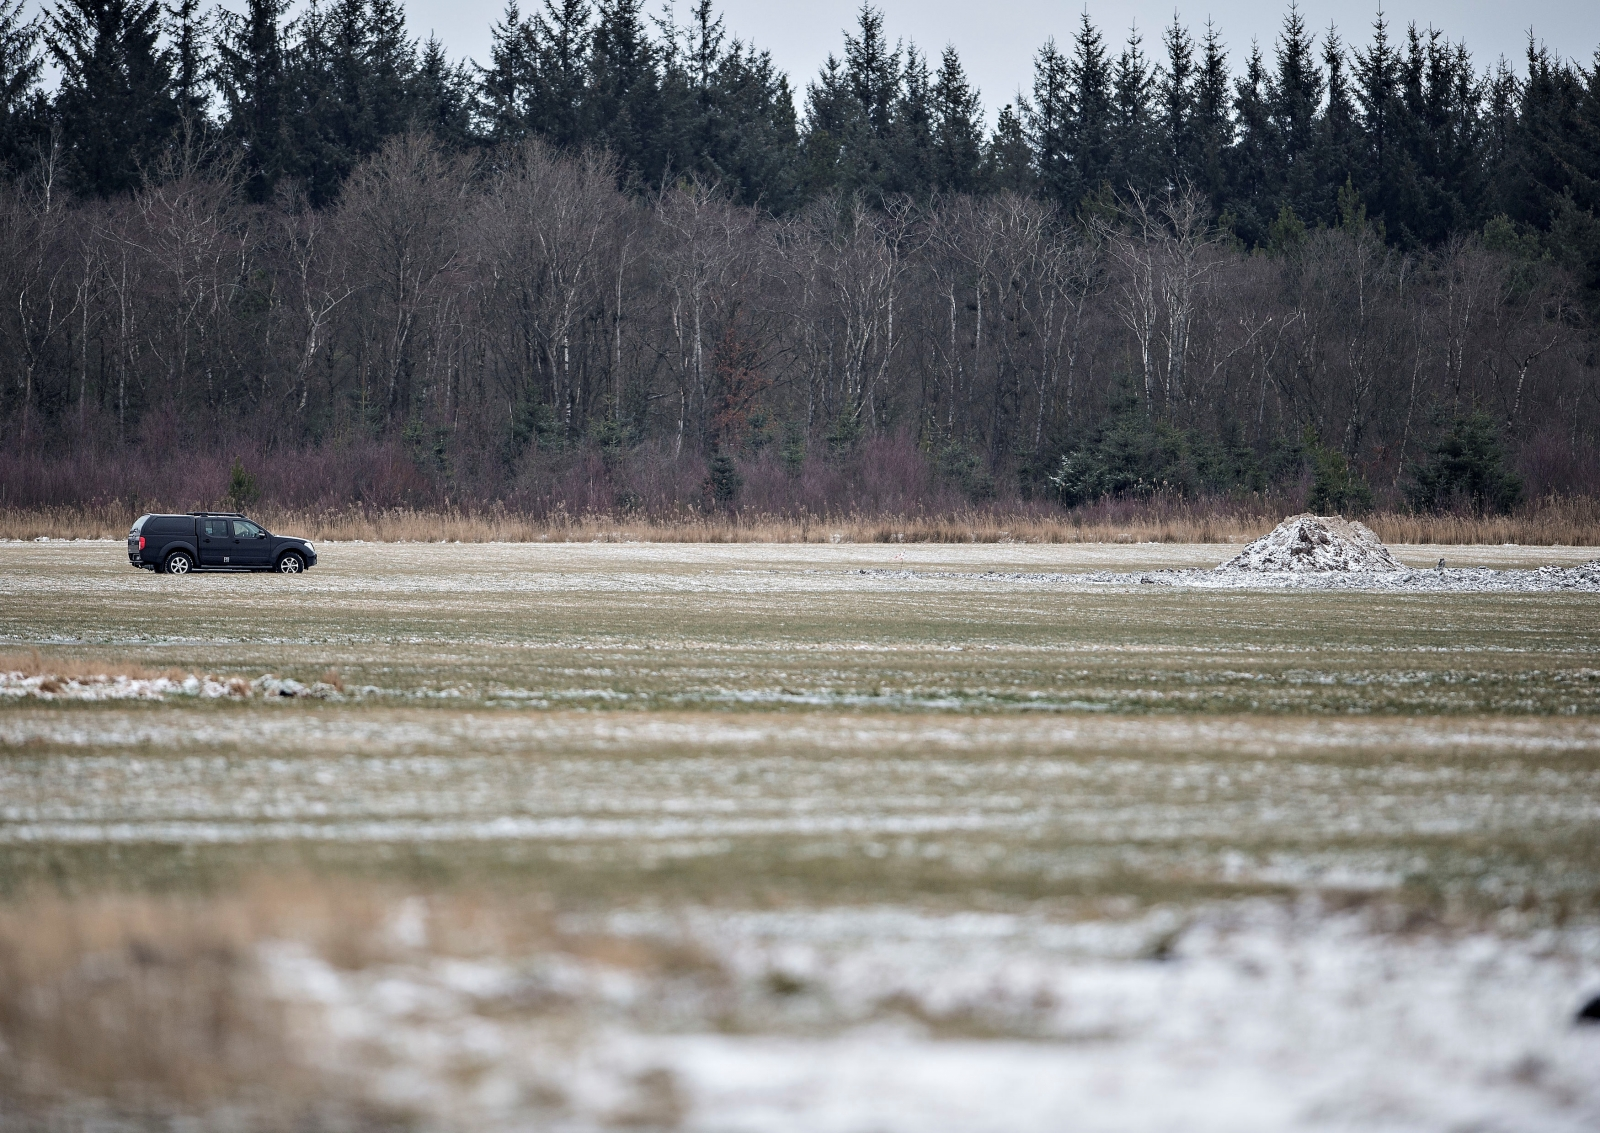 Danish boy finds remains of German Messerschmitt in a field